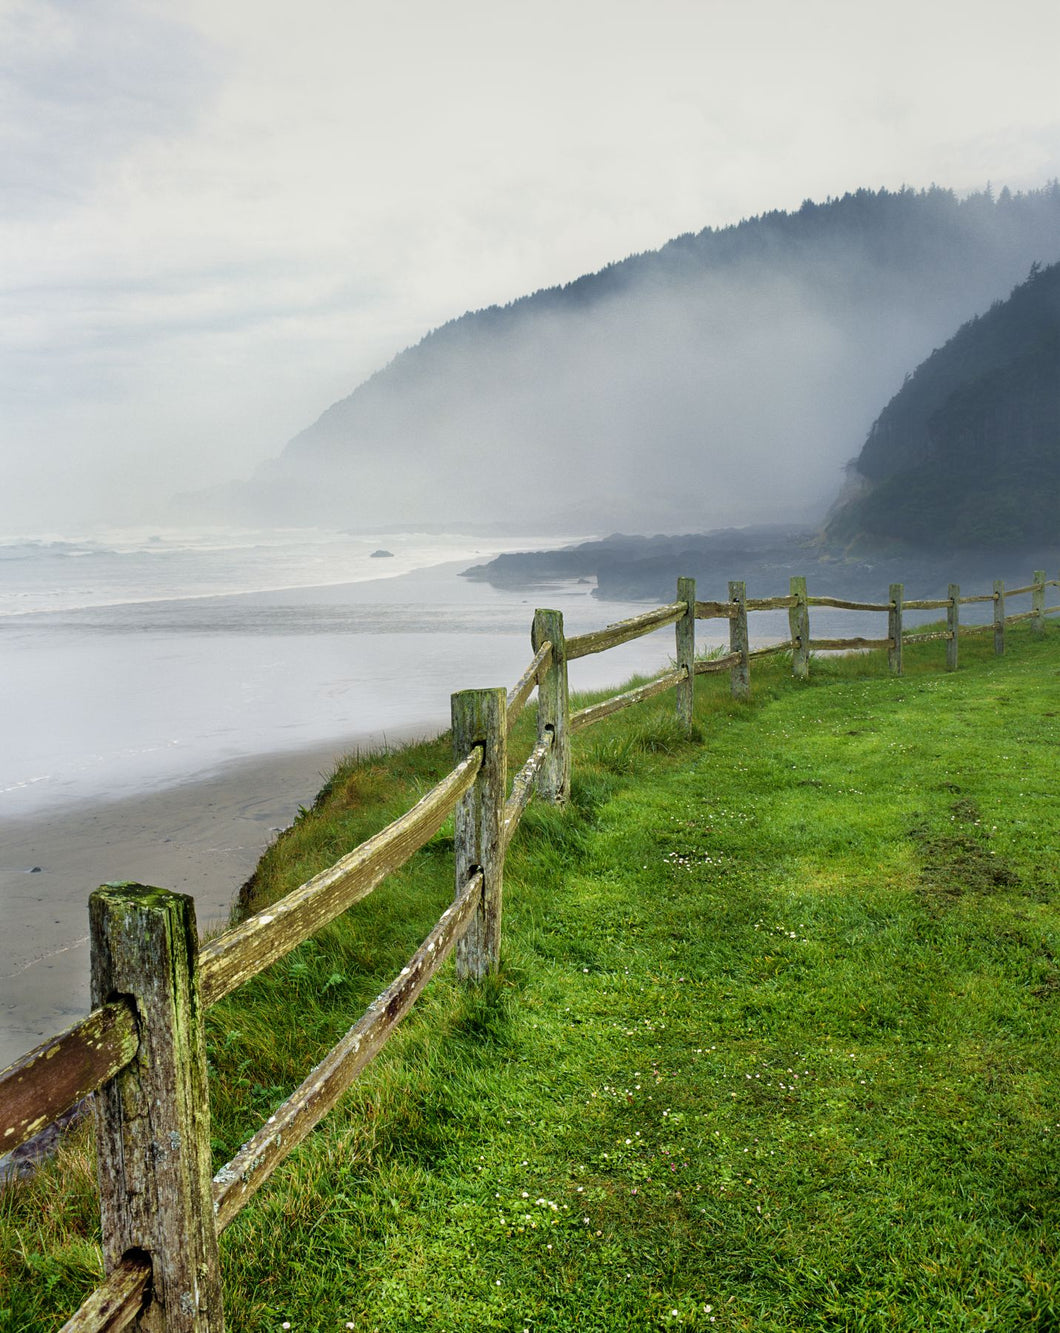 Fence at Captain Cook Point, Neptune State Scenic Viewpoint, Cape Perpetua, Lincoln County, Oregon, USA